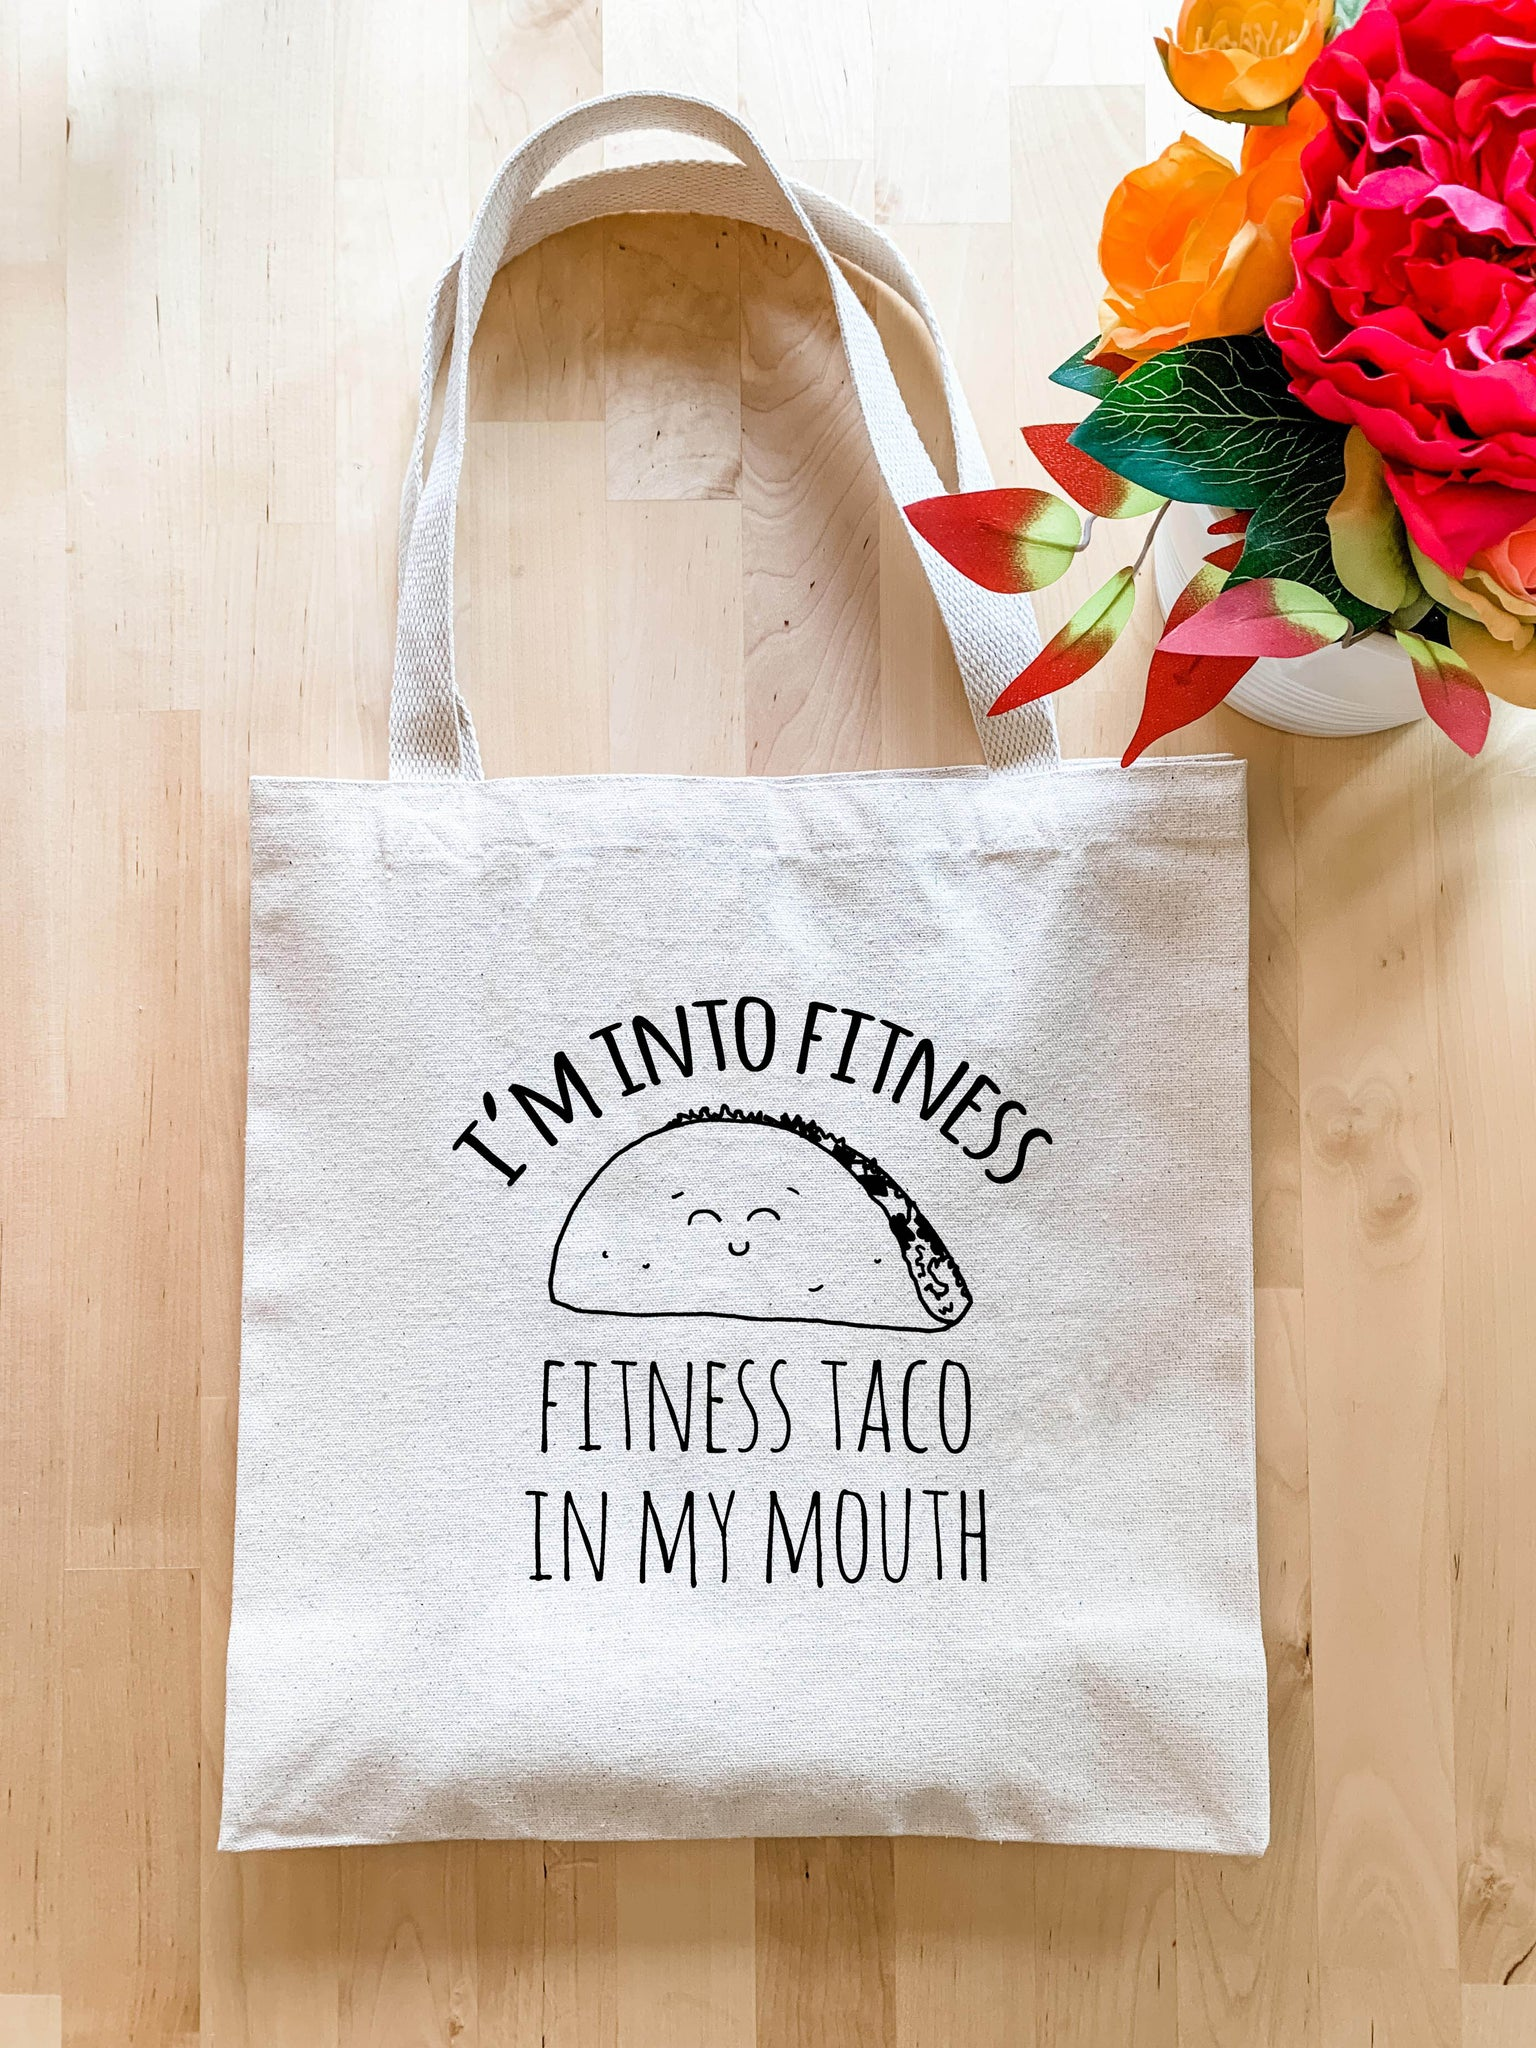 I'm Into Fitness, Fitness Taco In My Mouth - Tote Bag - MoonlightMakers